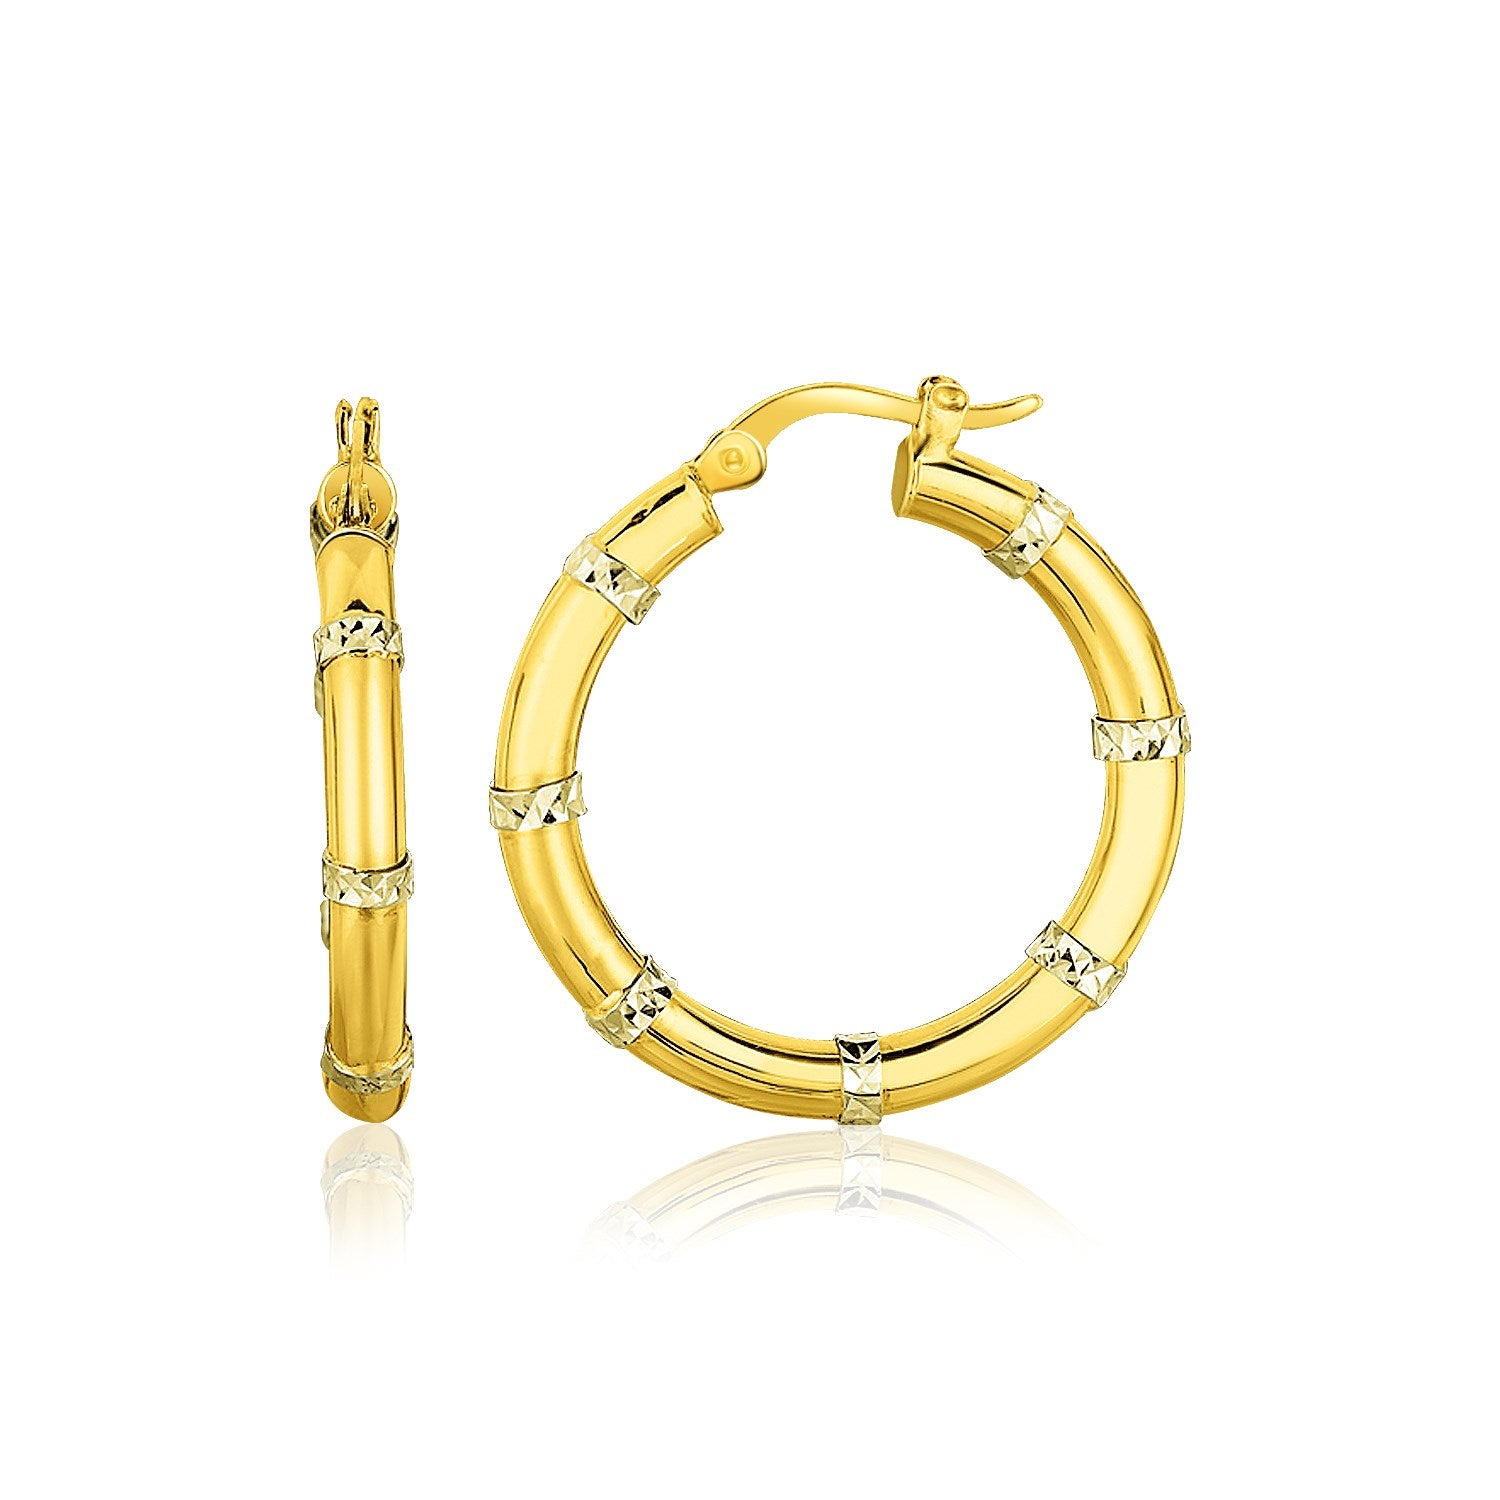 14K Two-Tone Gold Alternate Textured Hoop Earrings